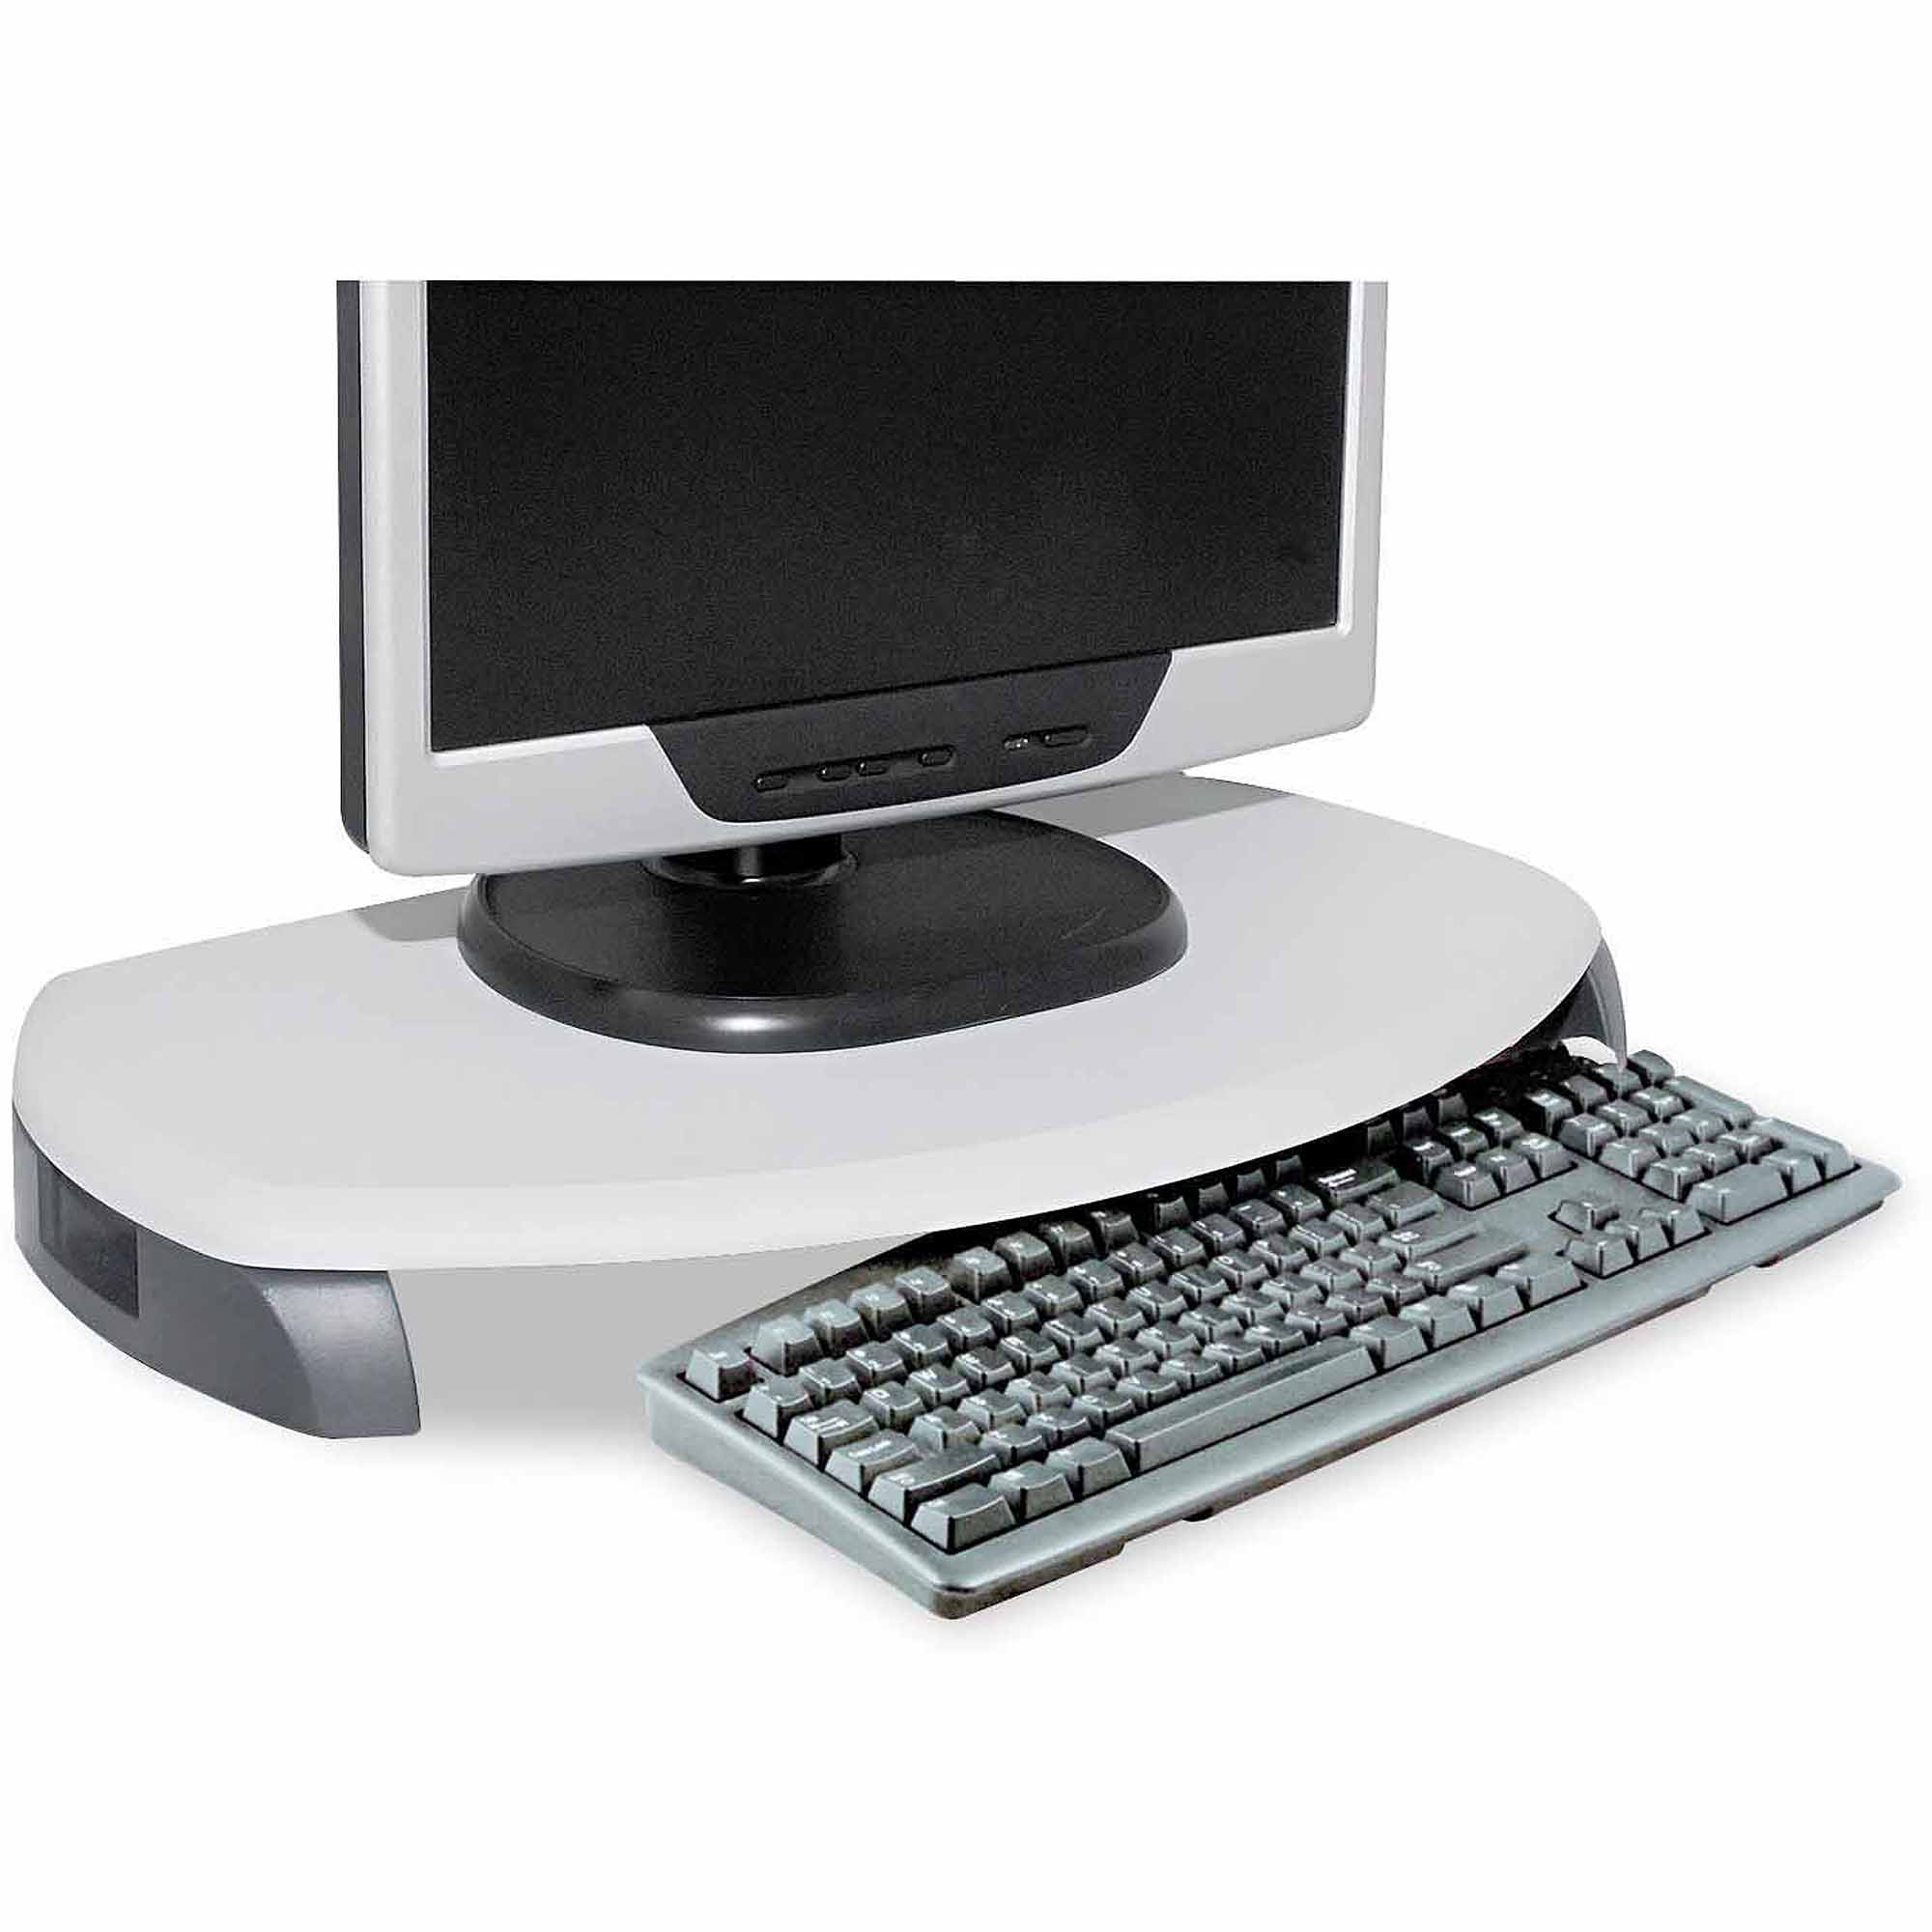 "Kantek CRT/LCD Stand with Keyboard Storage, 23"" x 13.25"" x 3"", Grey"